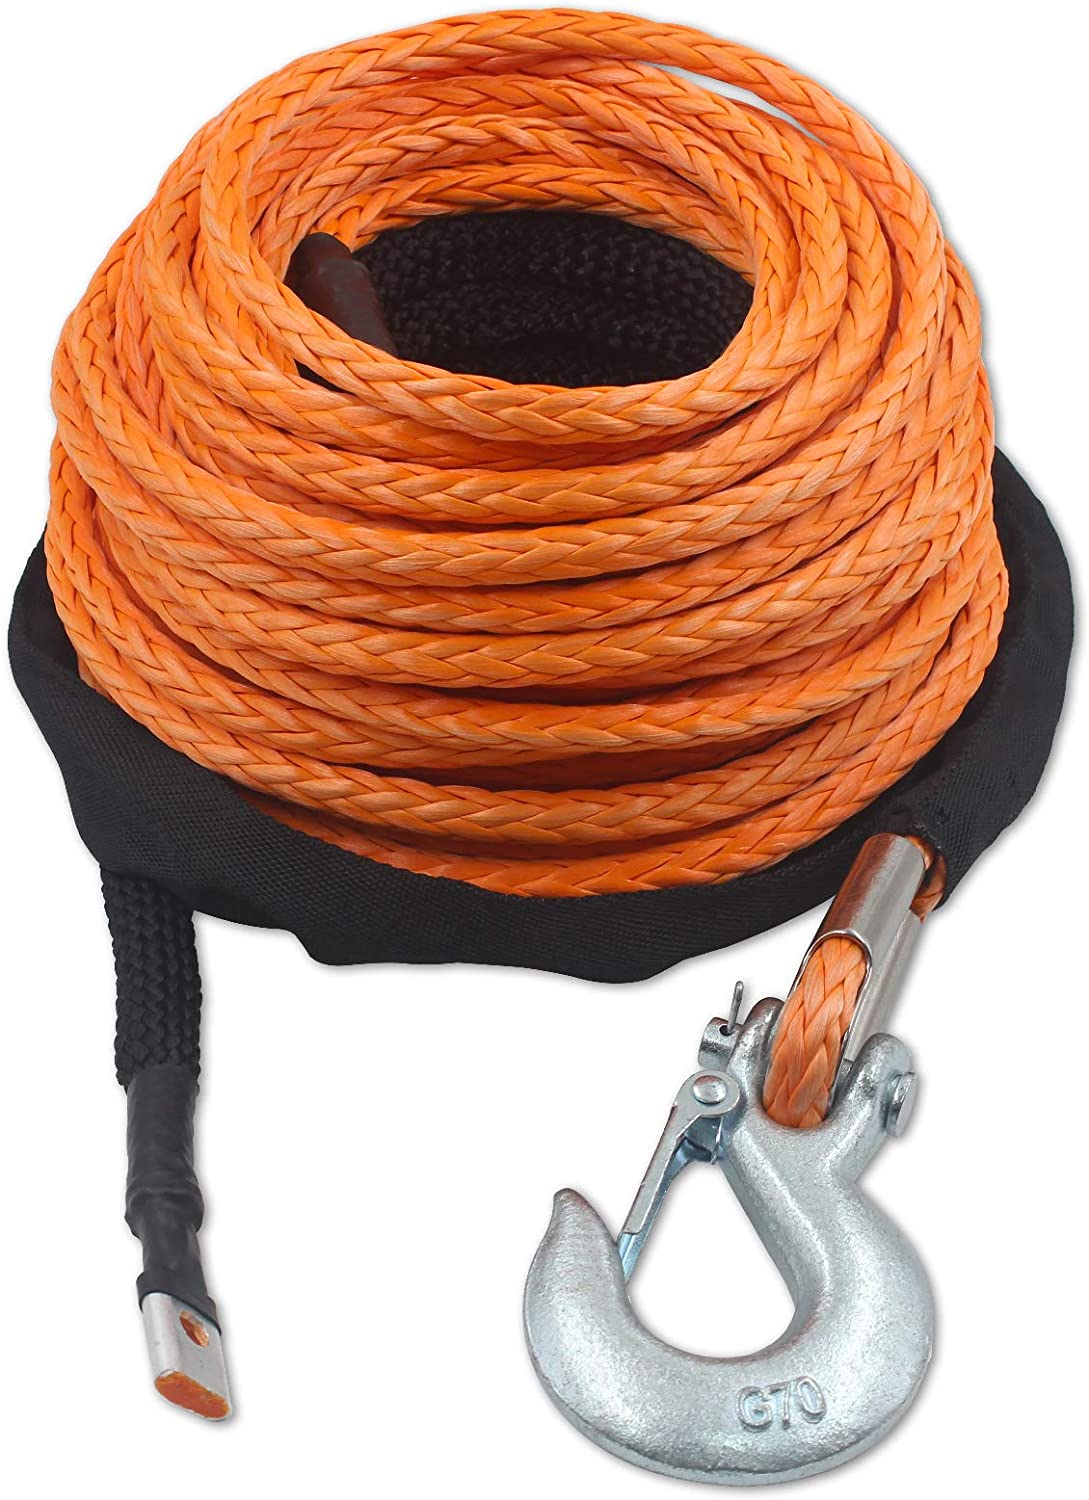 25,000 lbs Synthetic Winch Line Cable Rope with Black Protecing Sleeve TYT 3//8 x 100 ft Snap Hook and Rubber Stopper for 4x4//ATV//UTV//Jeep Advanced Synthetic Winch Rope Kit Orange